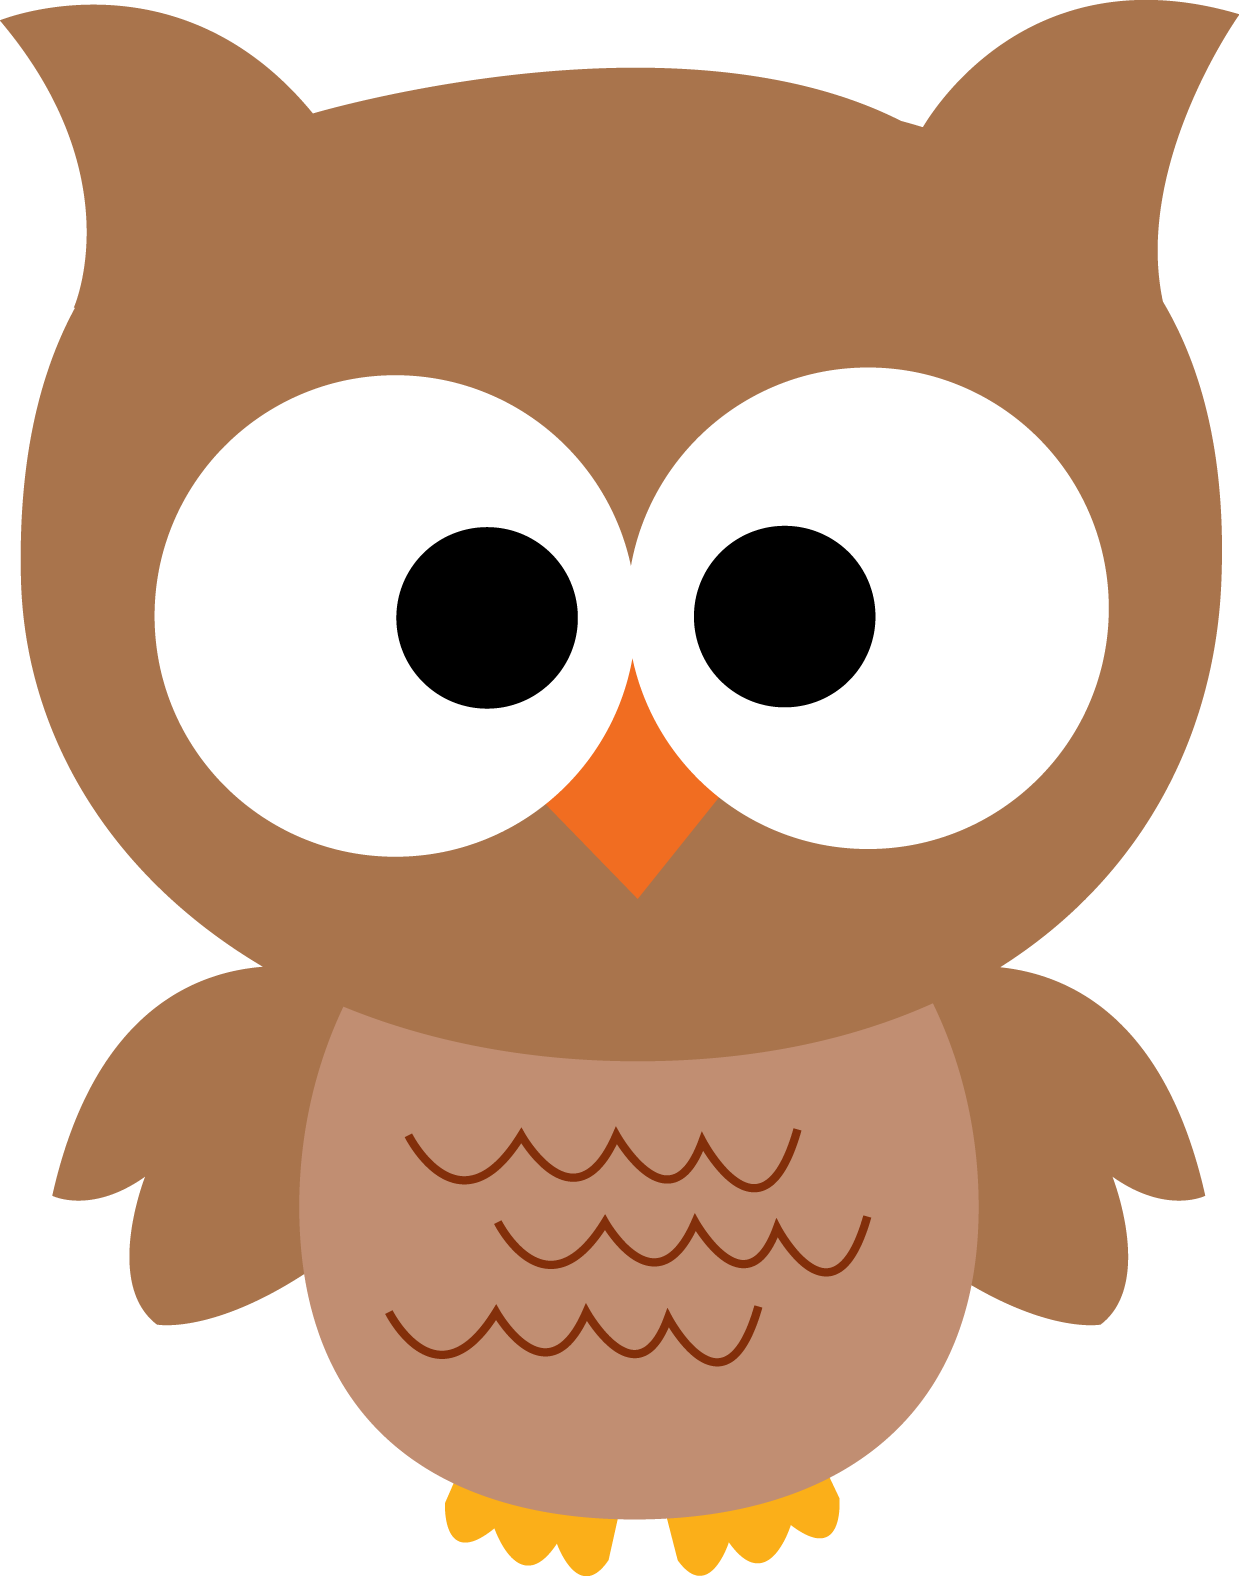 Back To School Owl Clip Art And With Owl-Back To School Owl Clip Art And With Owls Really Making A-1